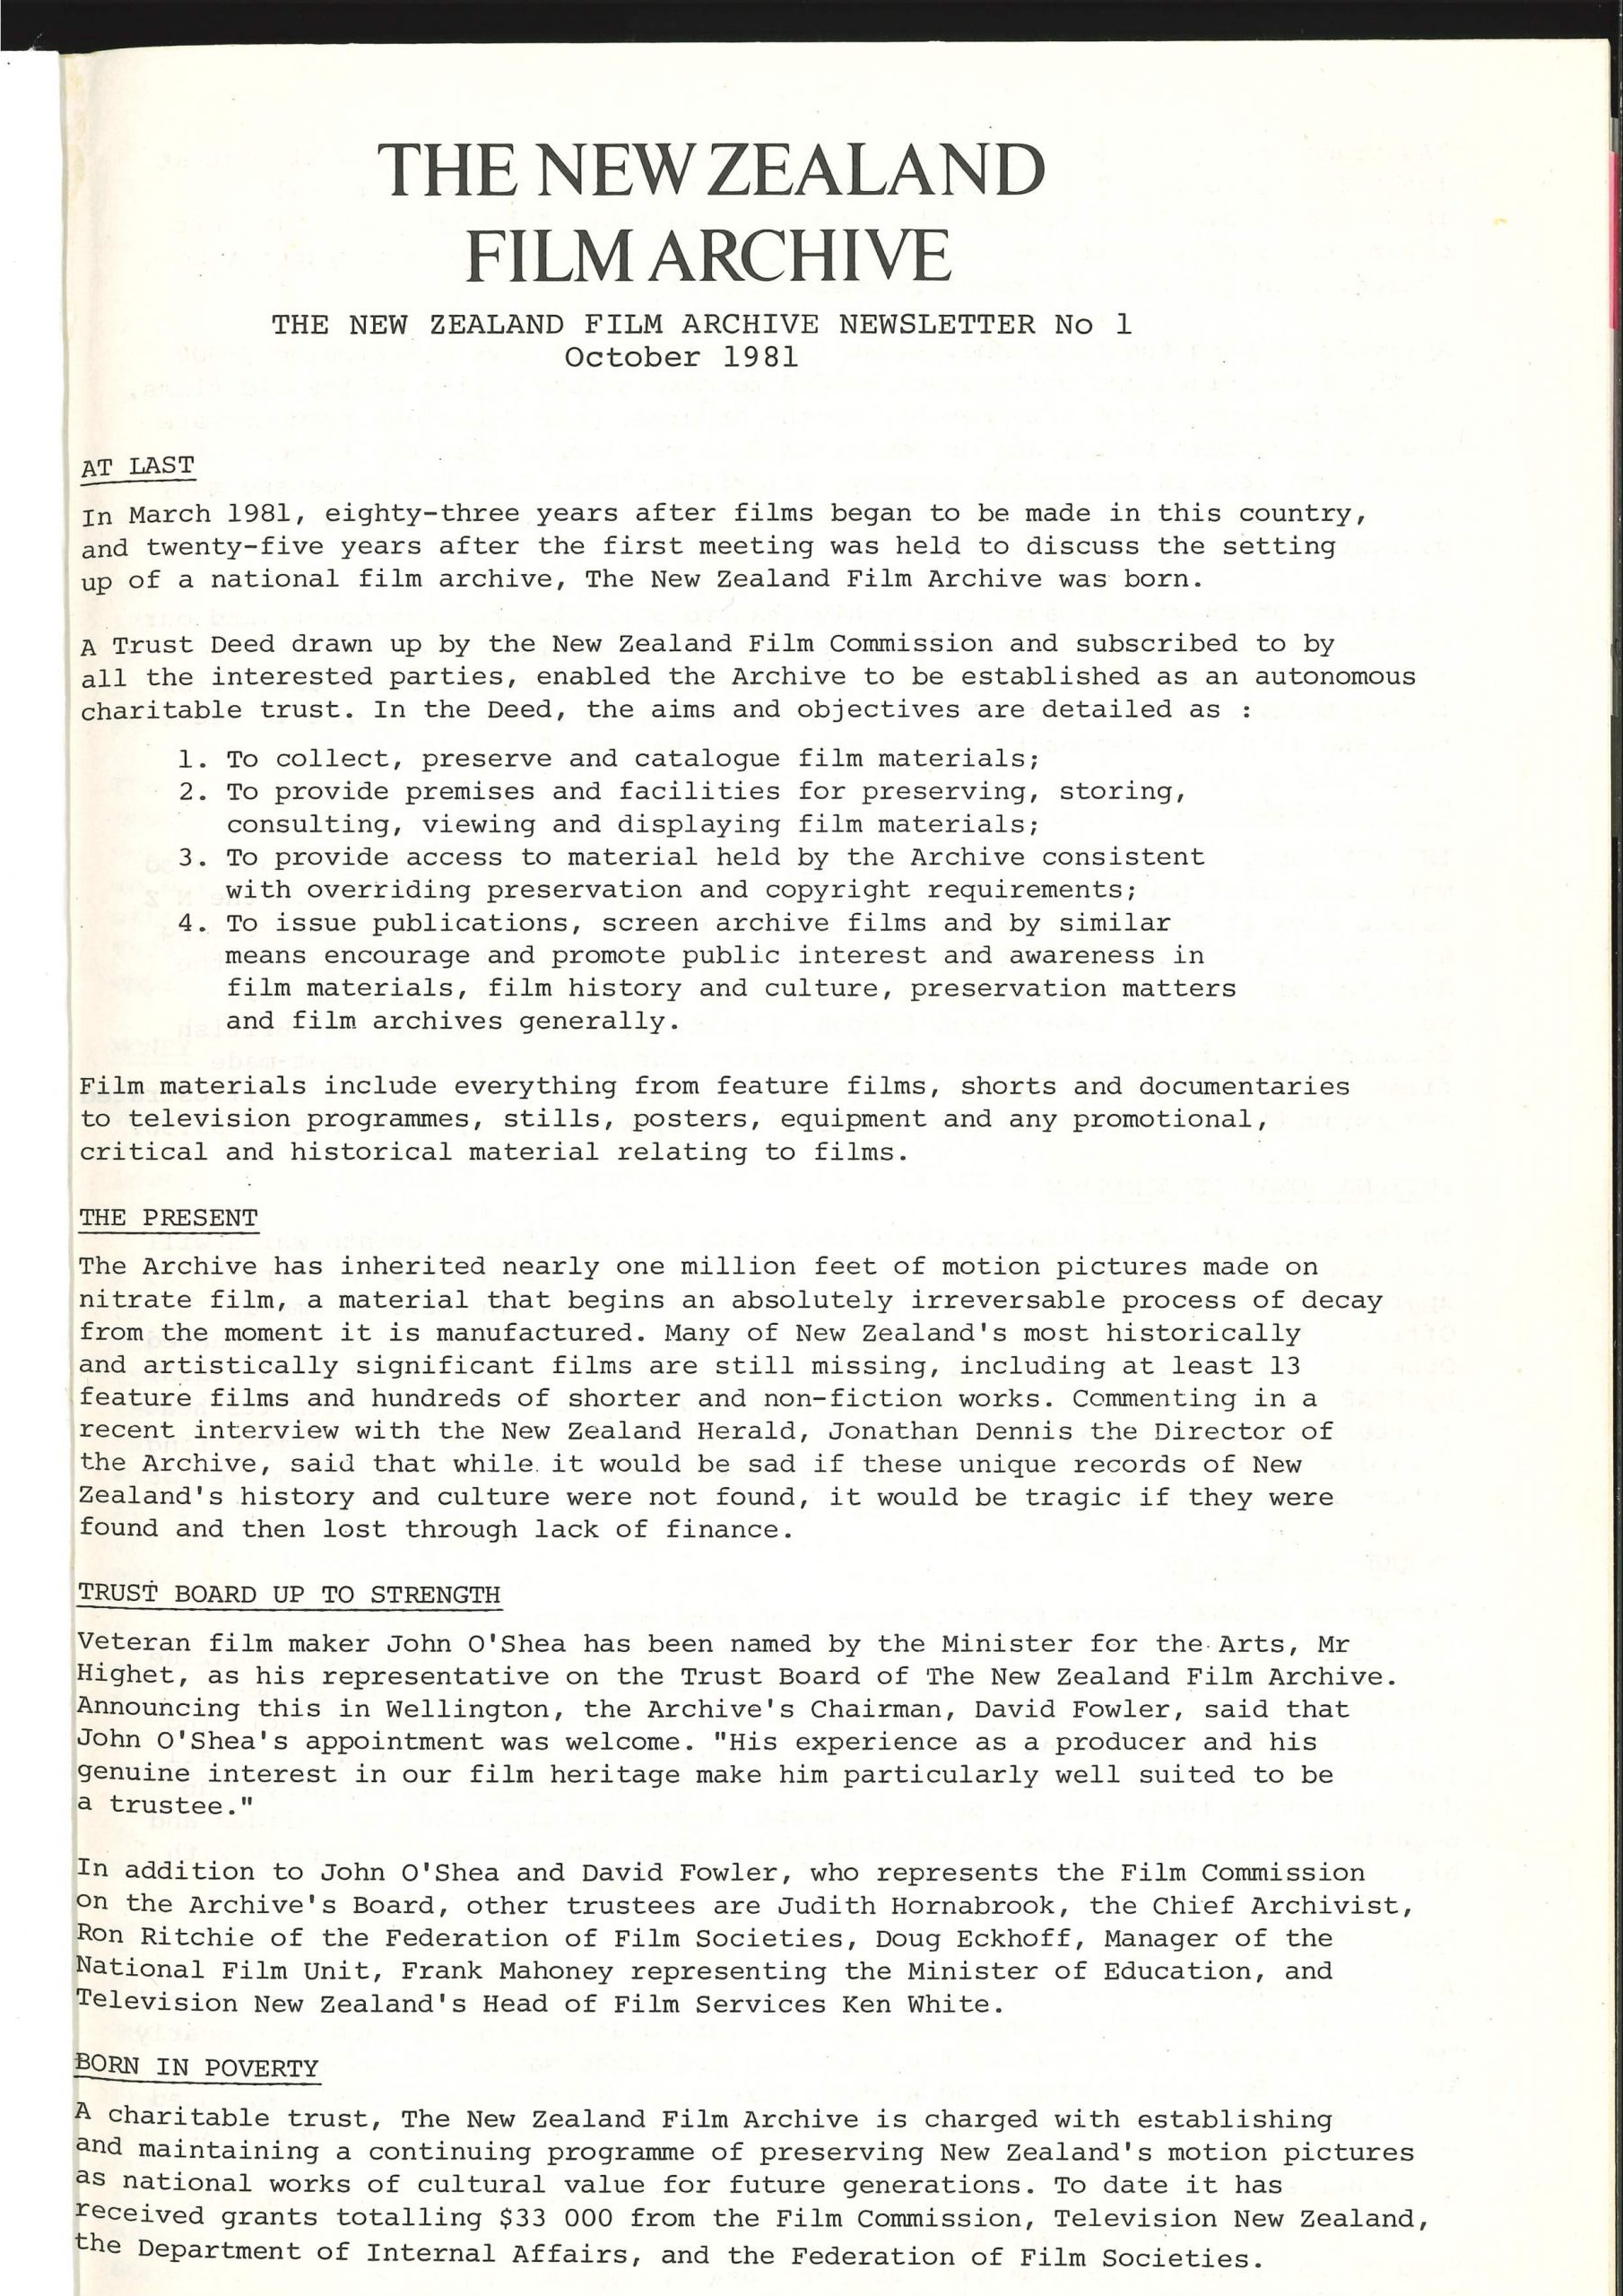 A typewritten newsletter